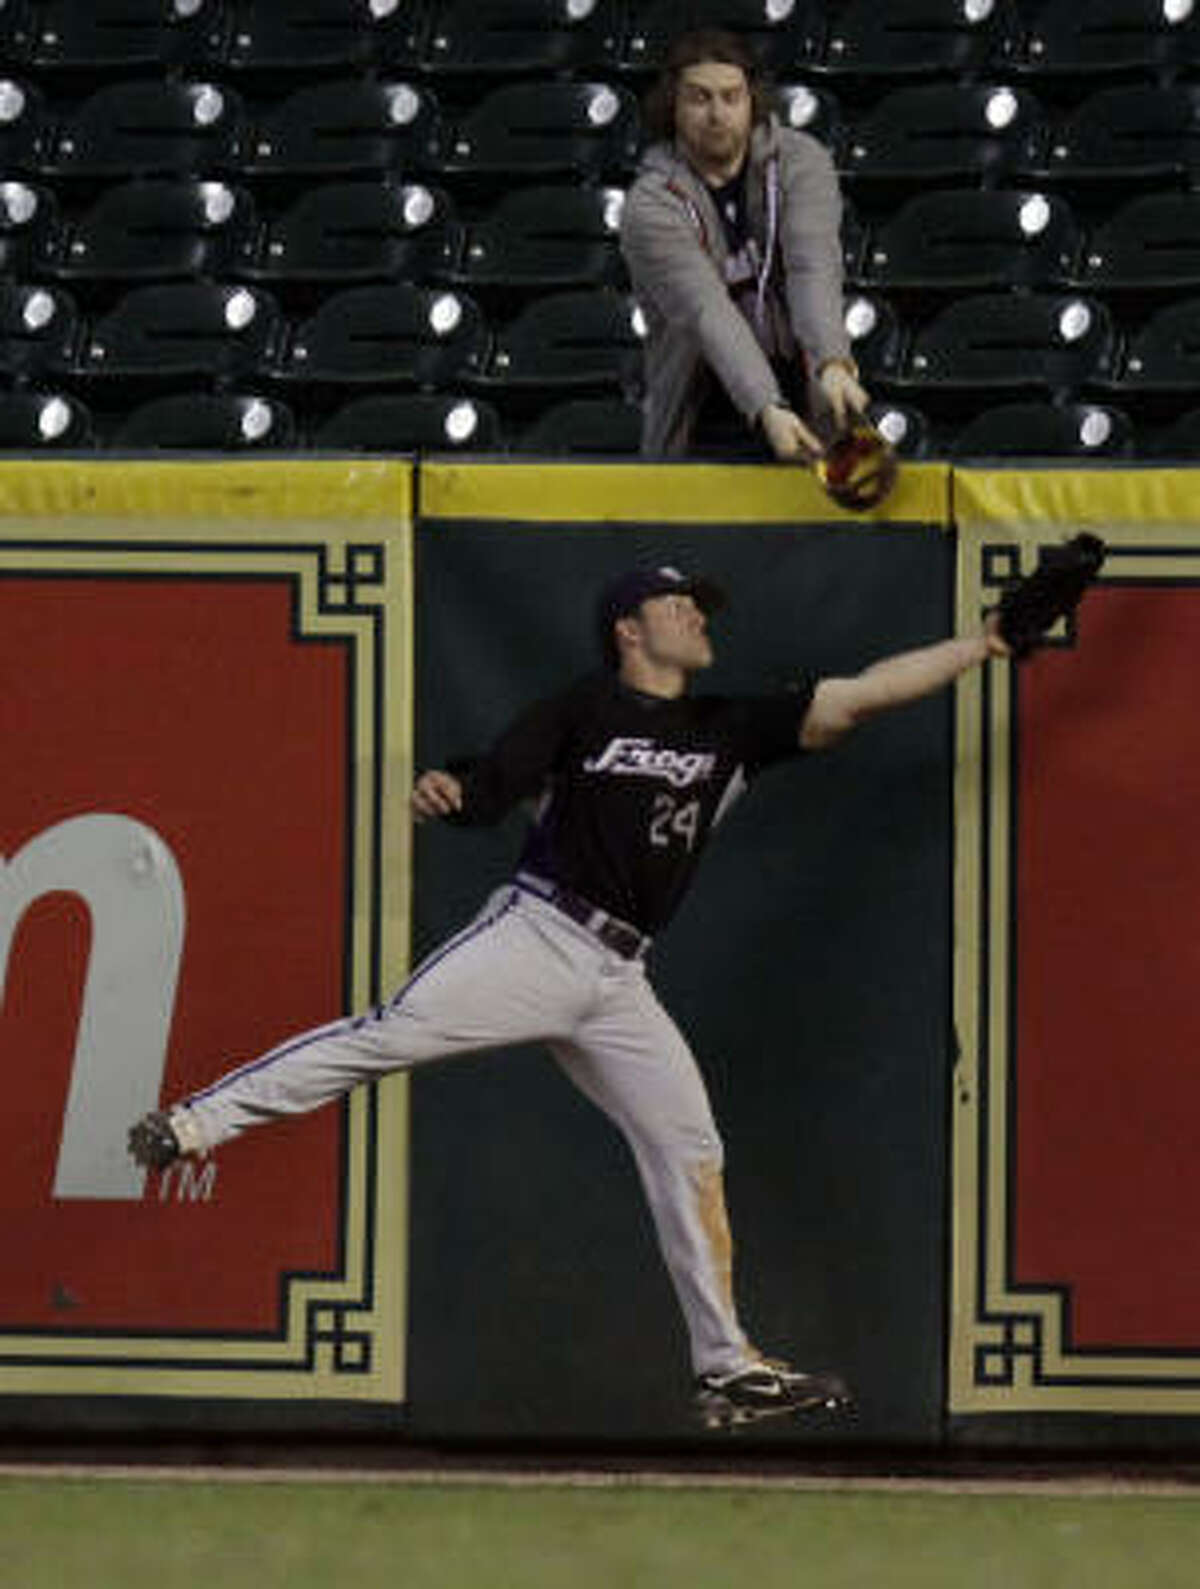 TCU RF Josh Elander (24) nabs a pop fly against Rice in the fifth inning on the final night of the Houston College Classic.